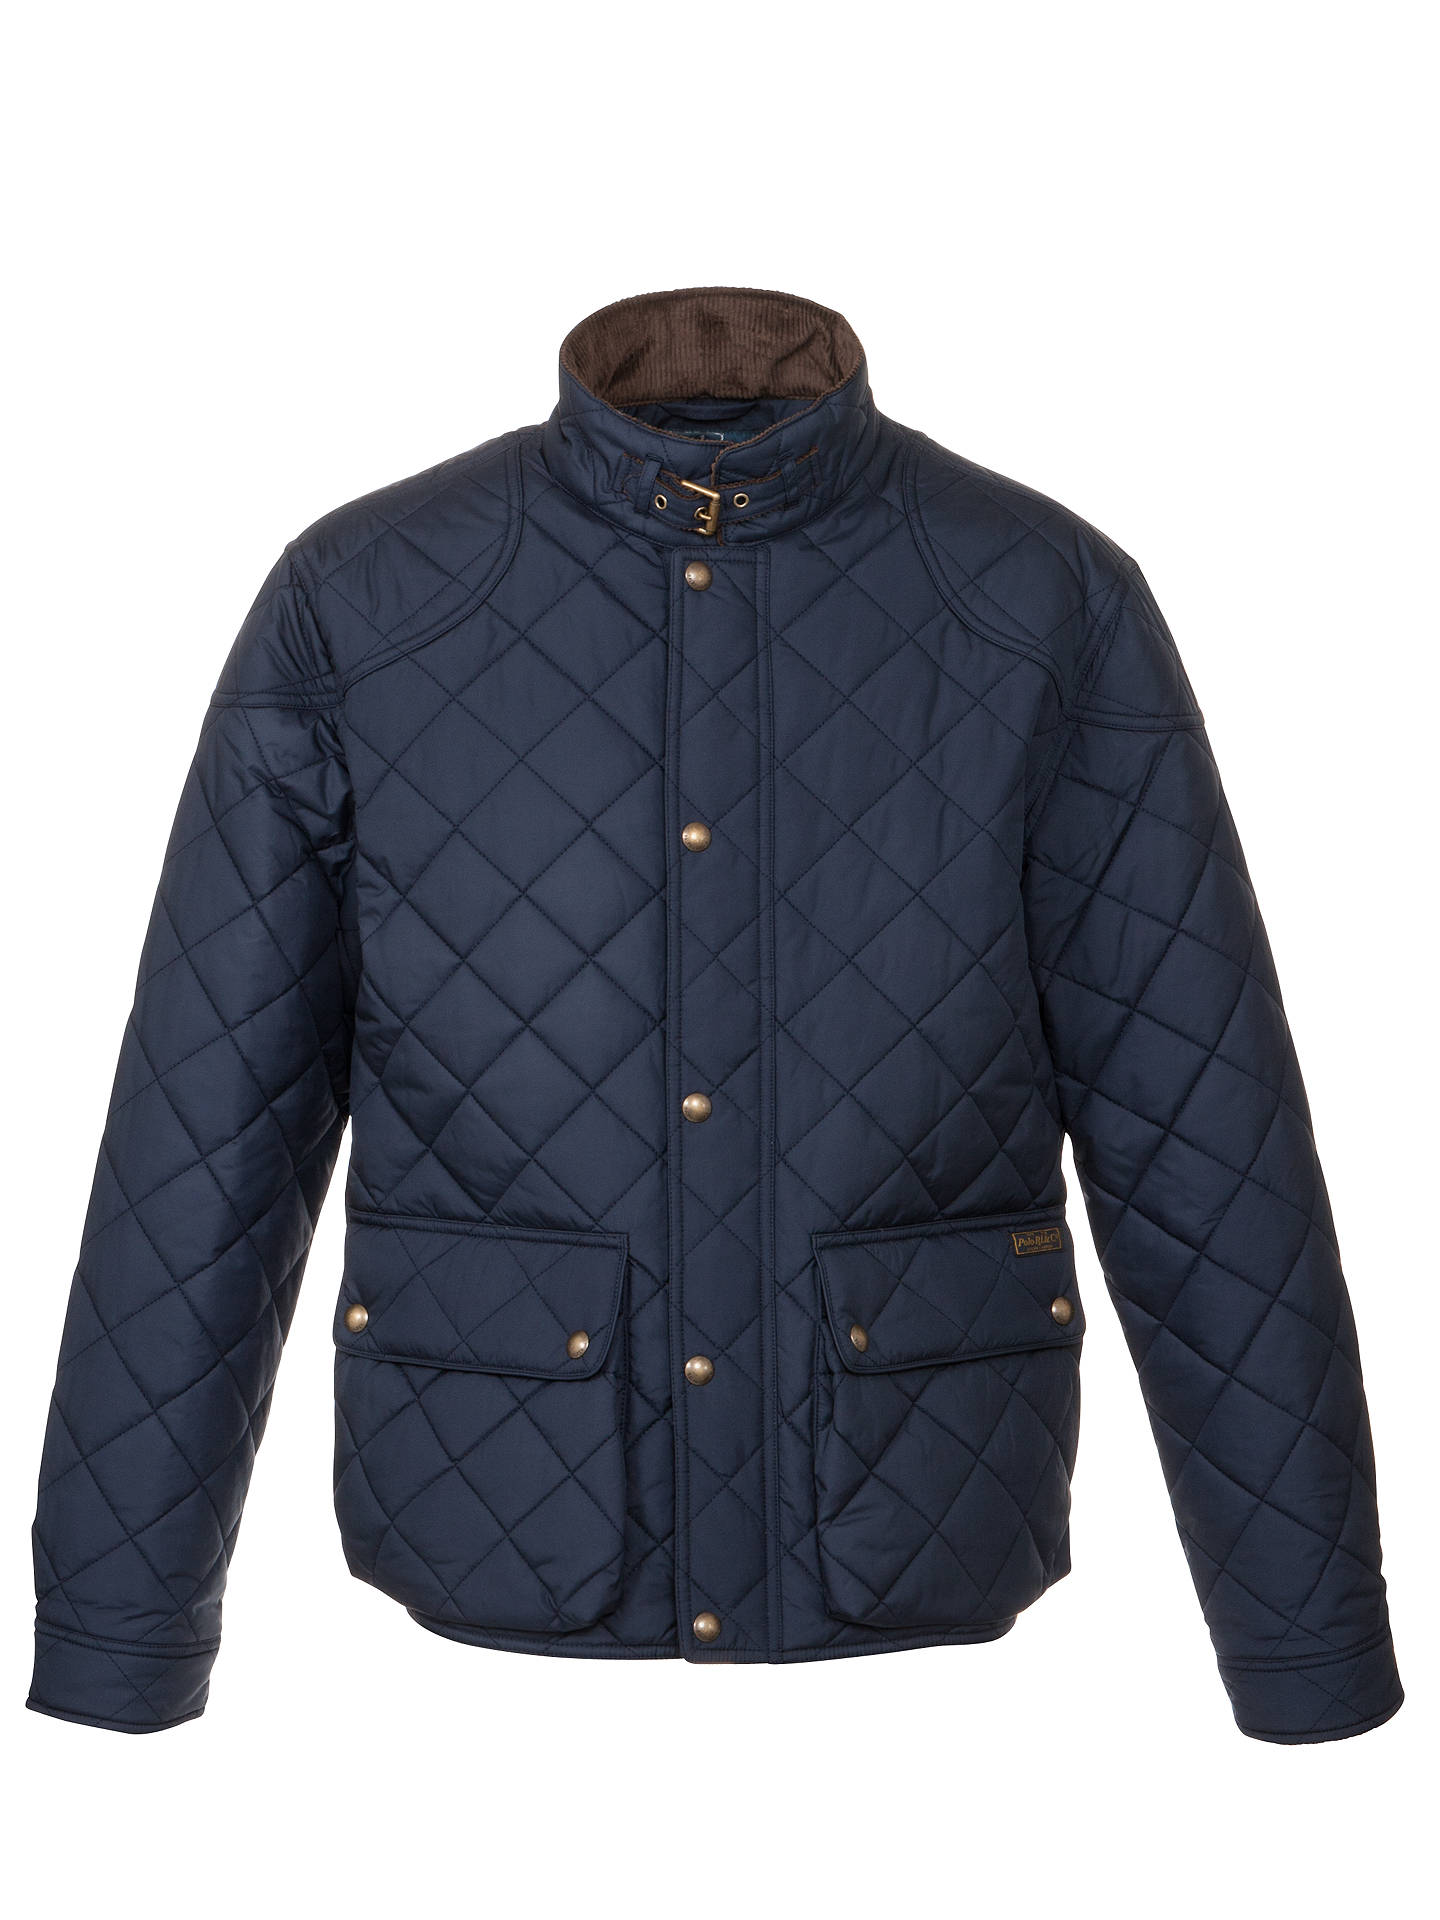 Polo Ralph Lauren Cadwell Quilted Bomber Jacket Navy At John Lewis